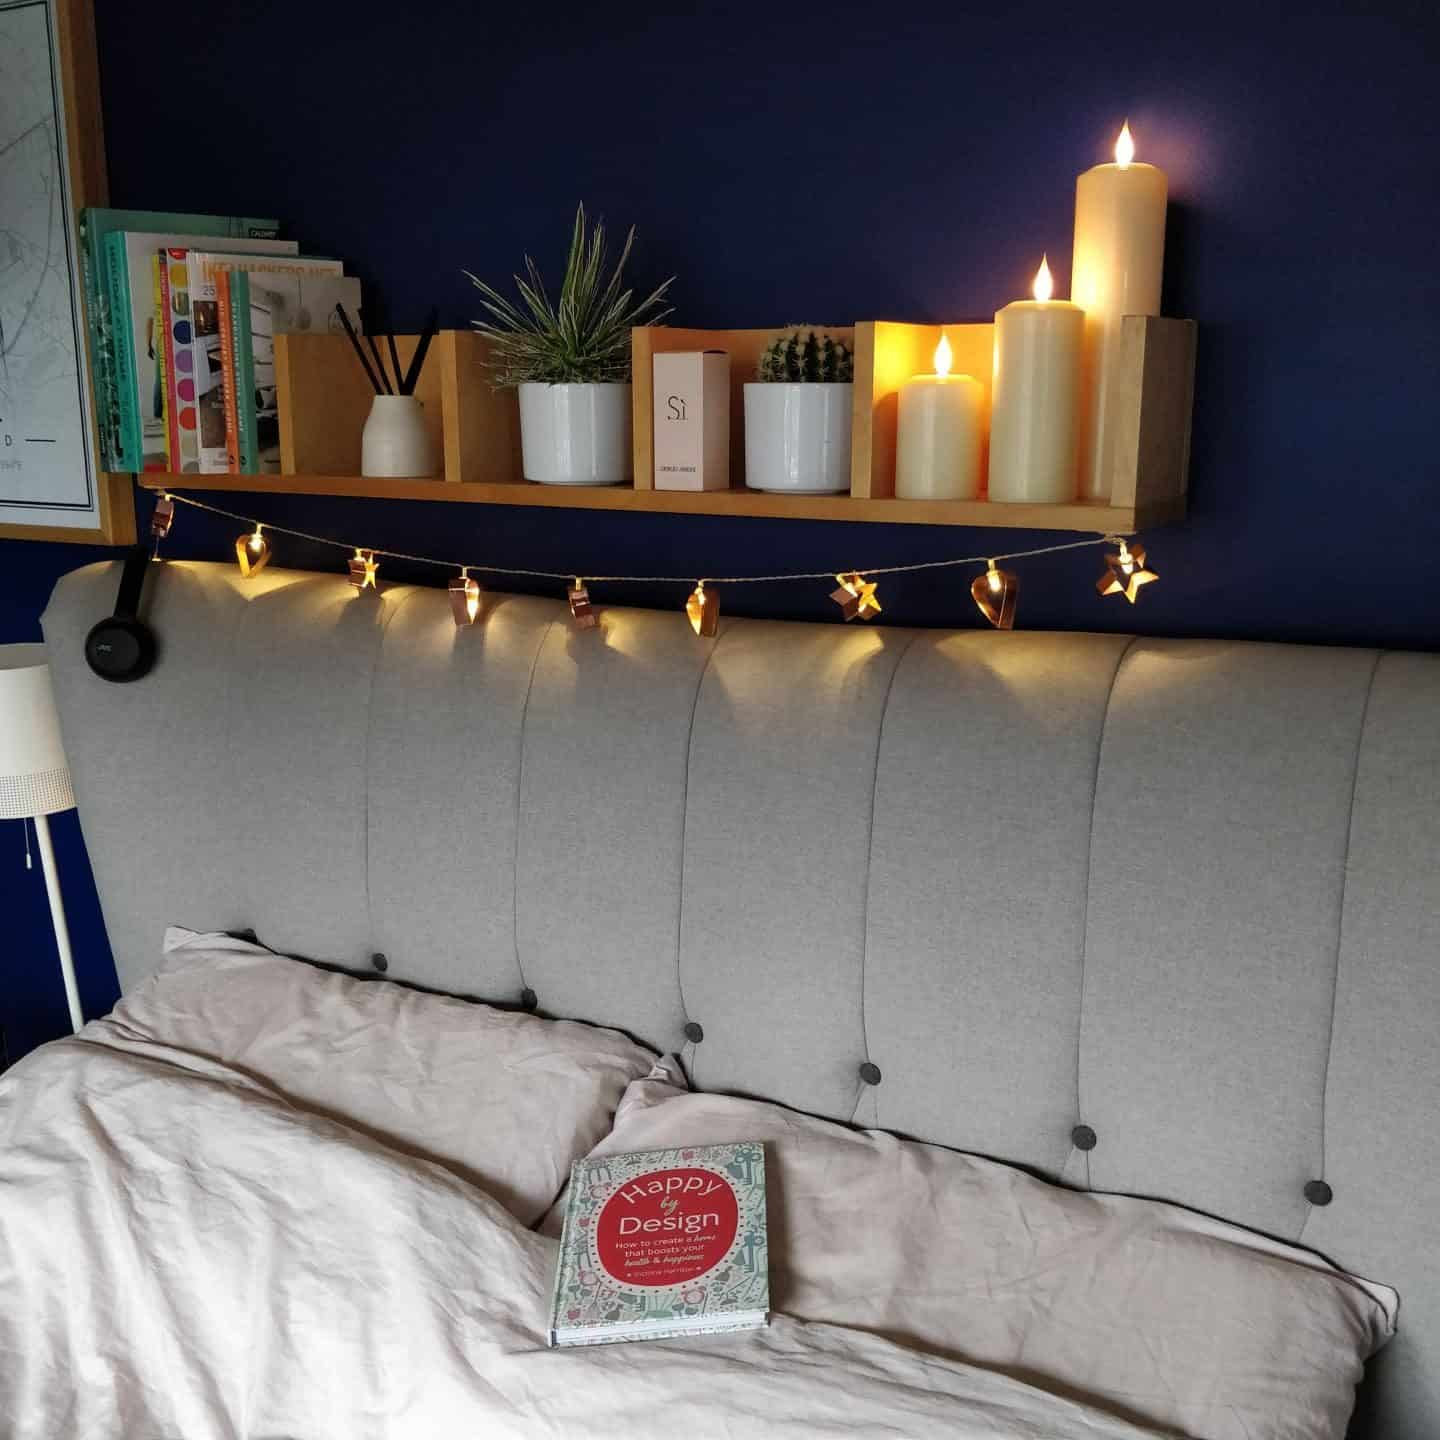 How to design your own happiness - create a cosy retreat